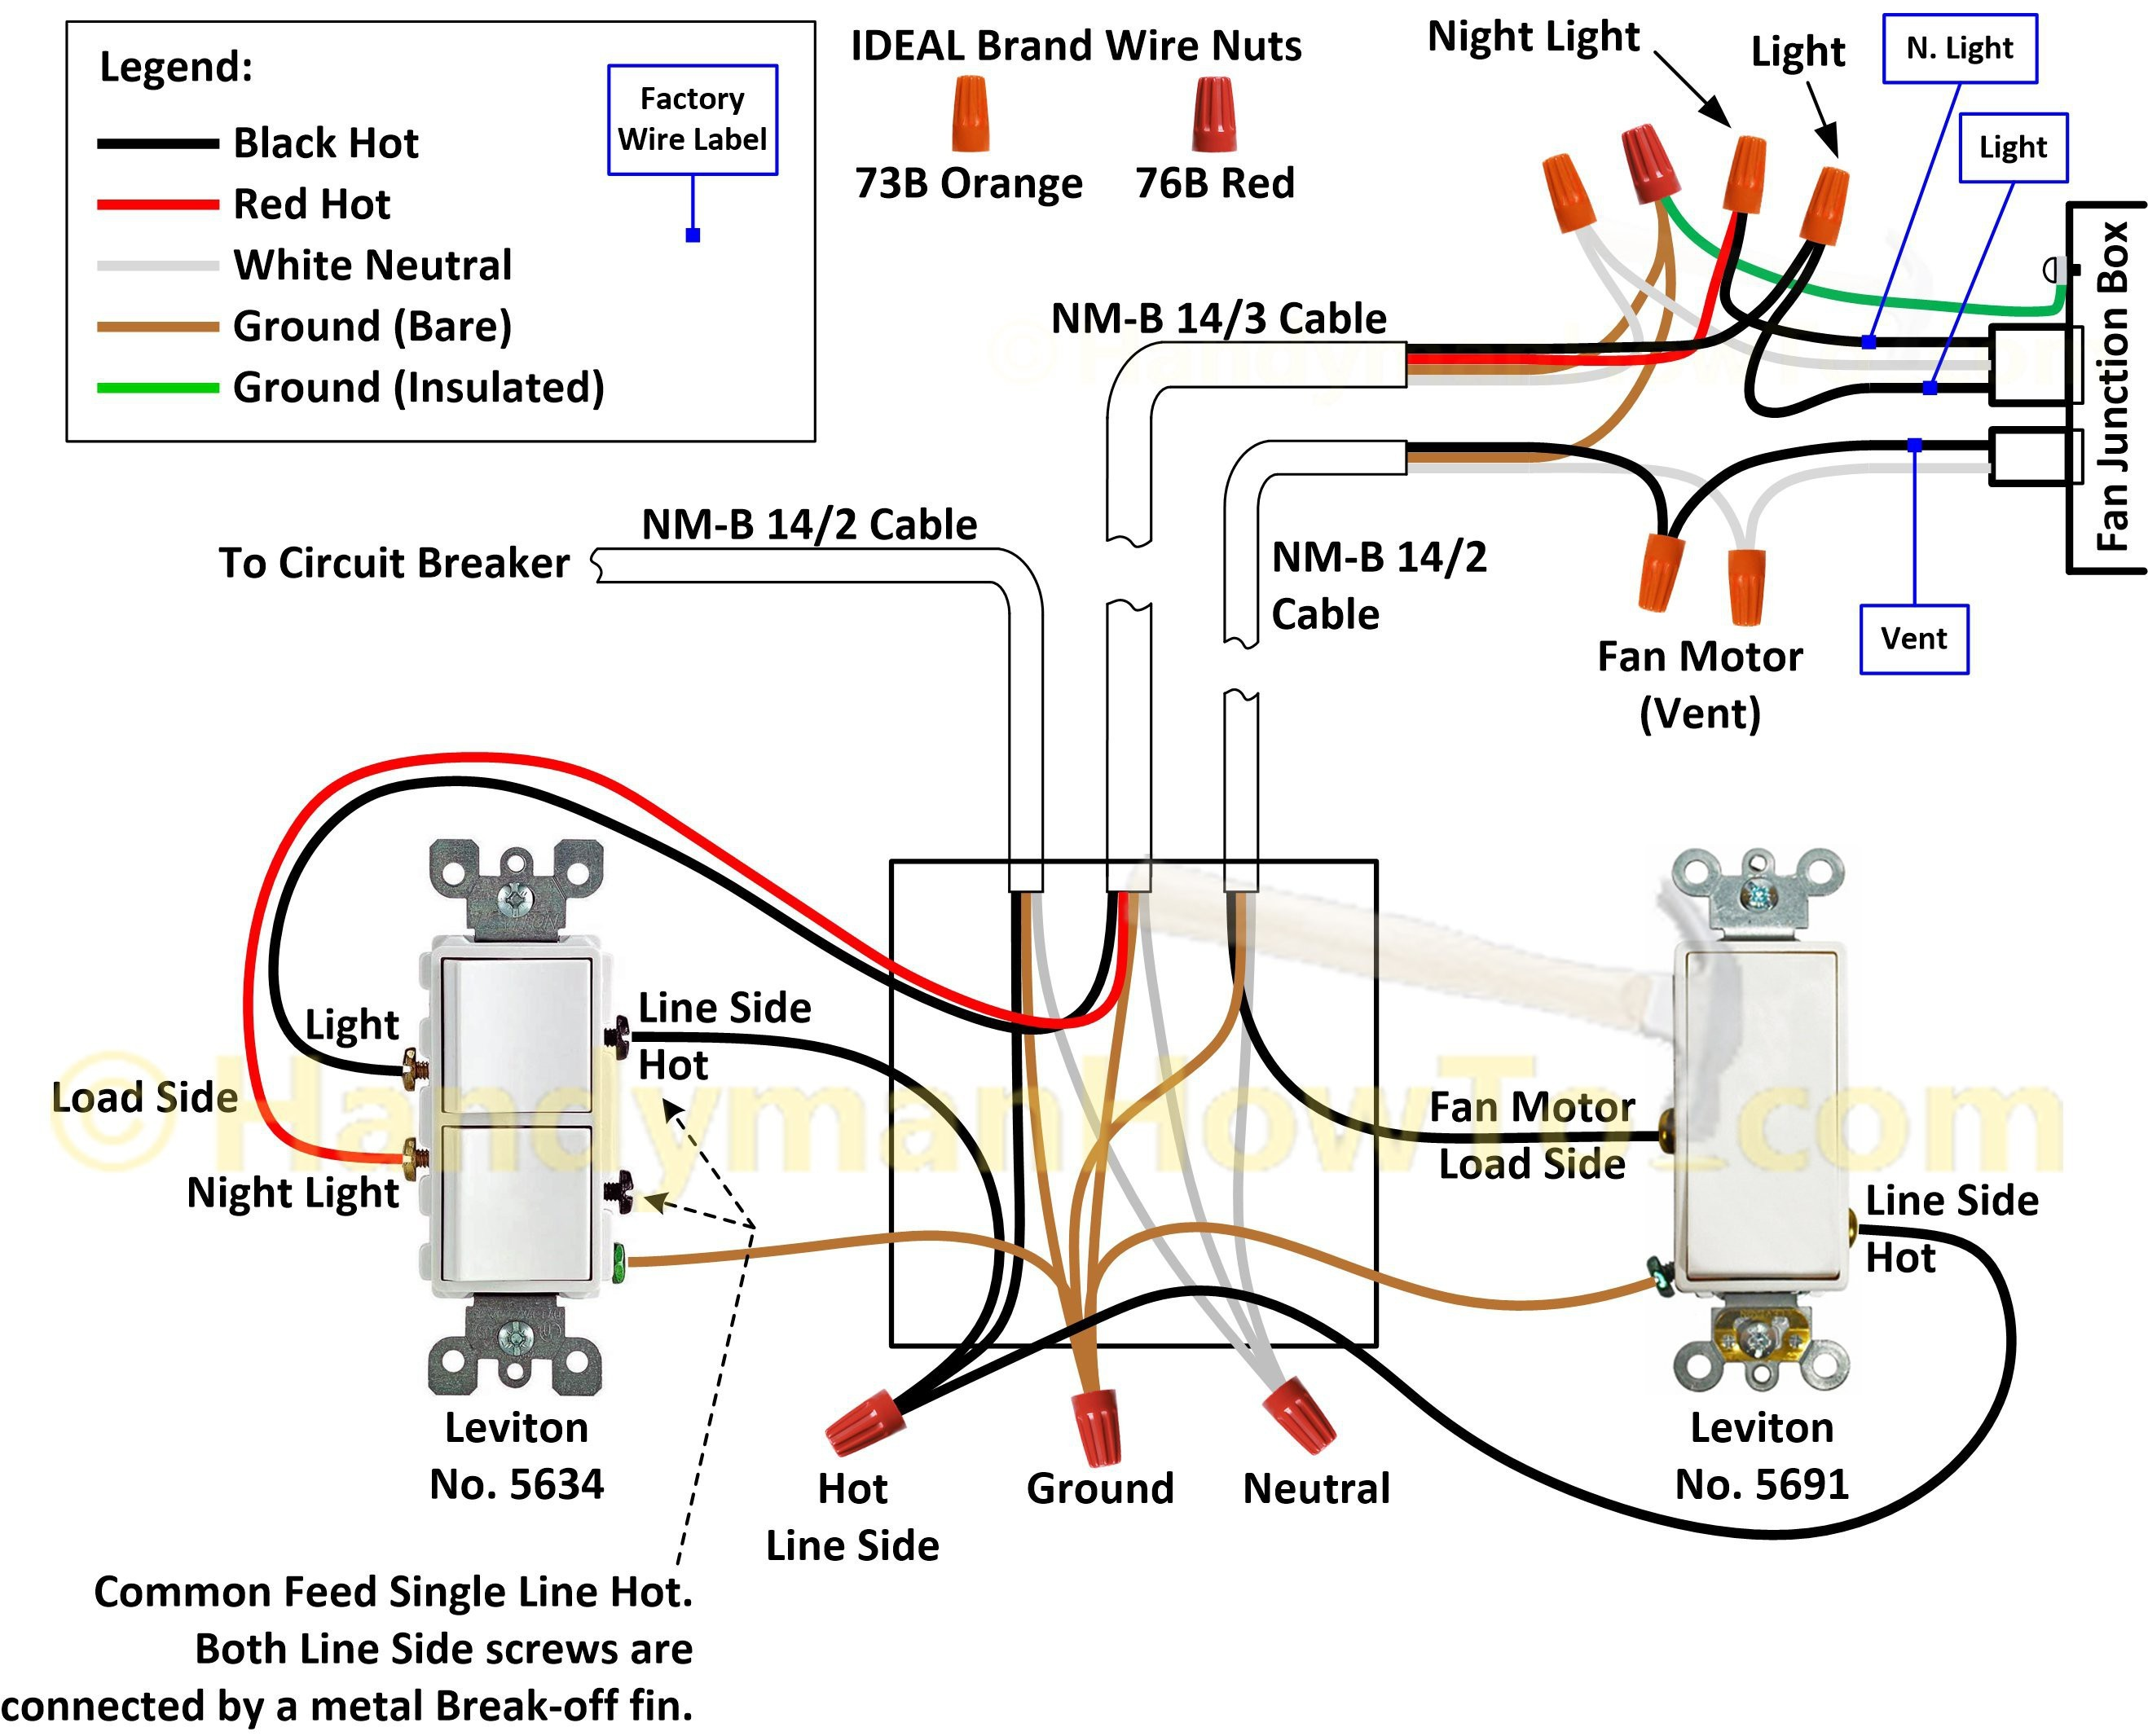 Gfci Wiring Diagram Without Ground : Gfci wiring diagram feed through method